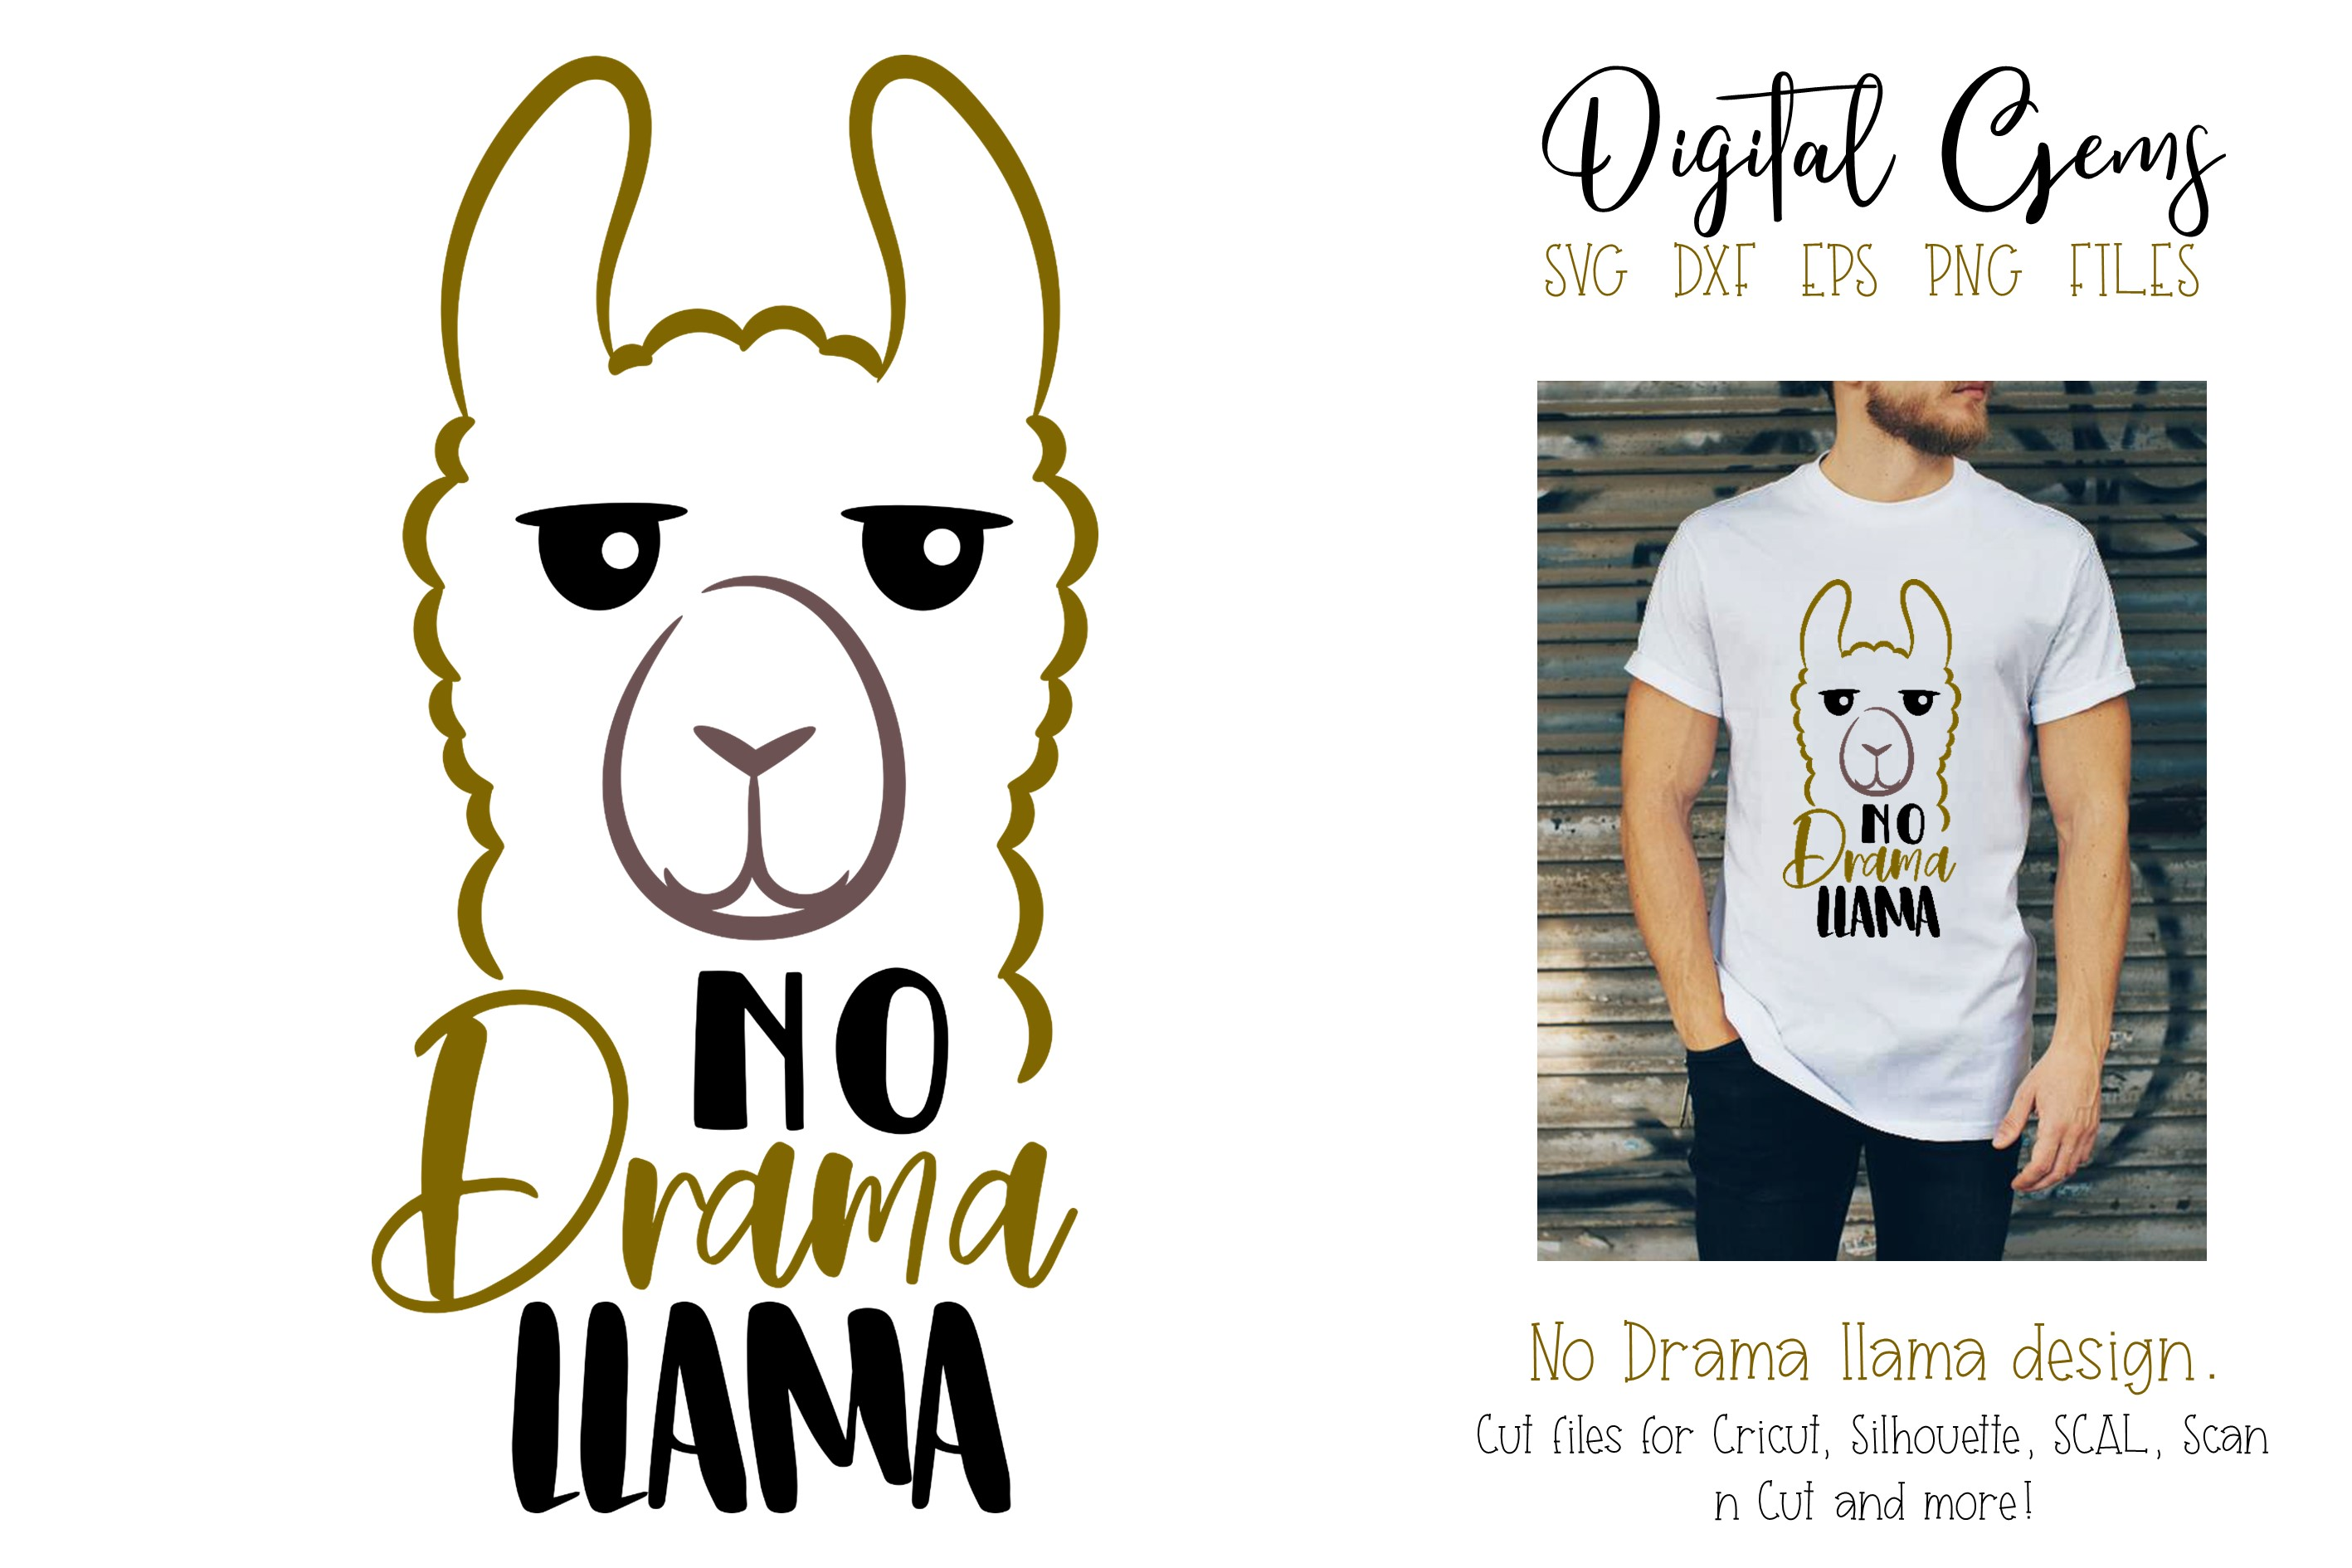 Download Free No Drama Llama Design Graphic By Digital Gems Creative Fabrica for Cricut Explore, Silhouette and other cutting machines.